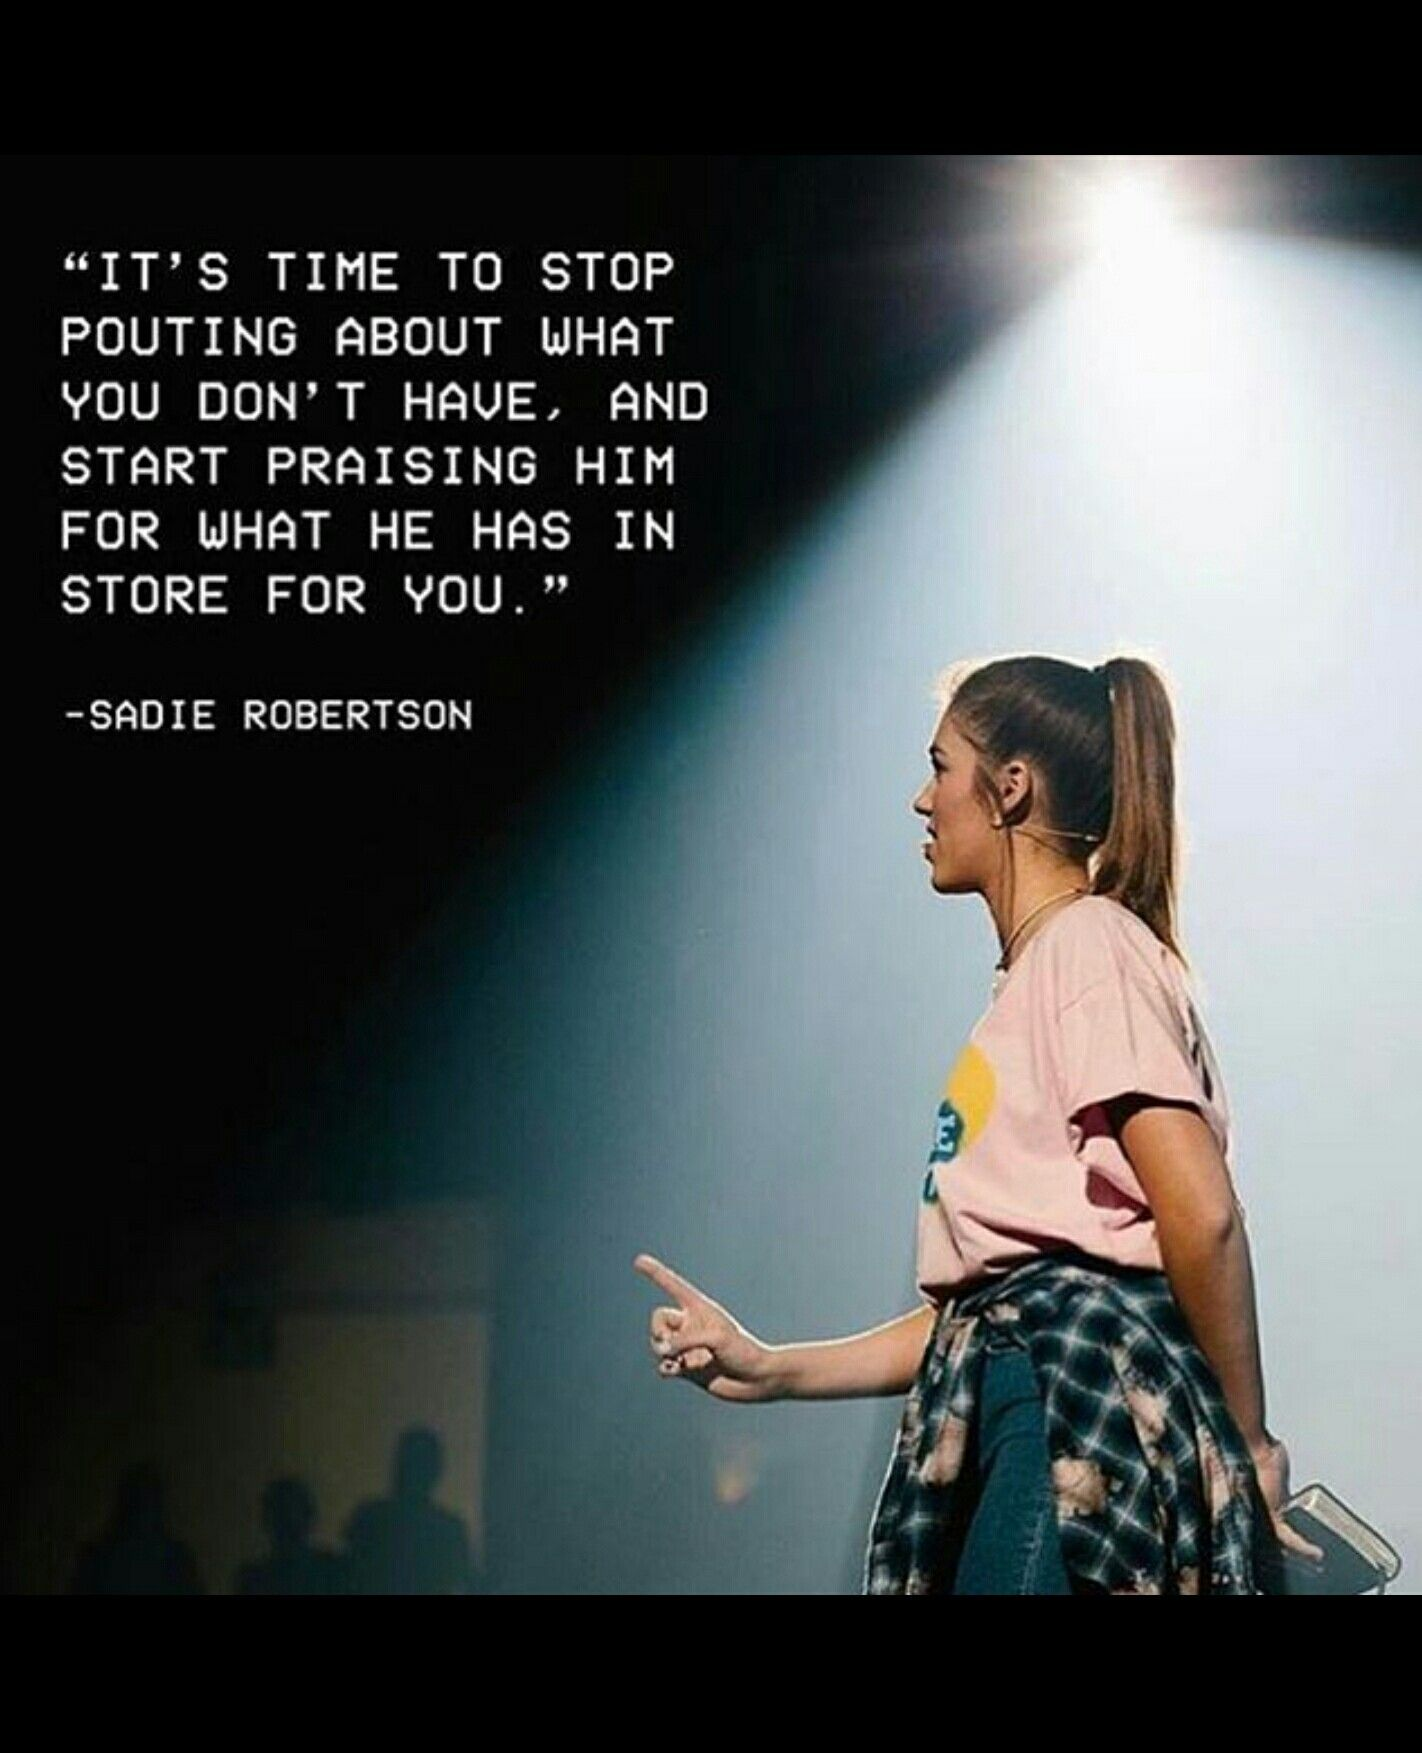 Sadie Robertson  So inspirational From the Sadie Robertson app